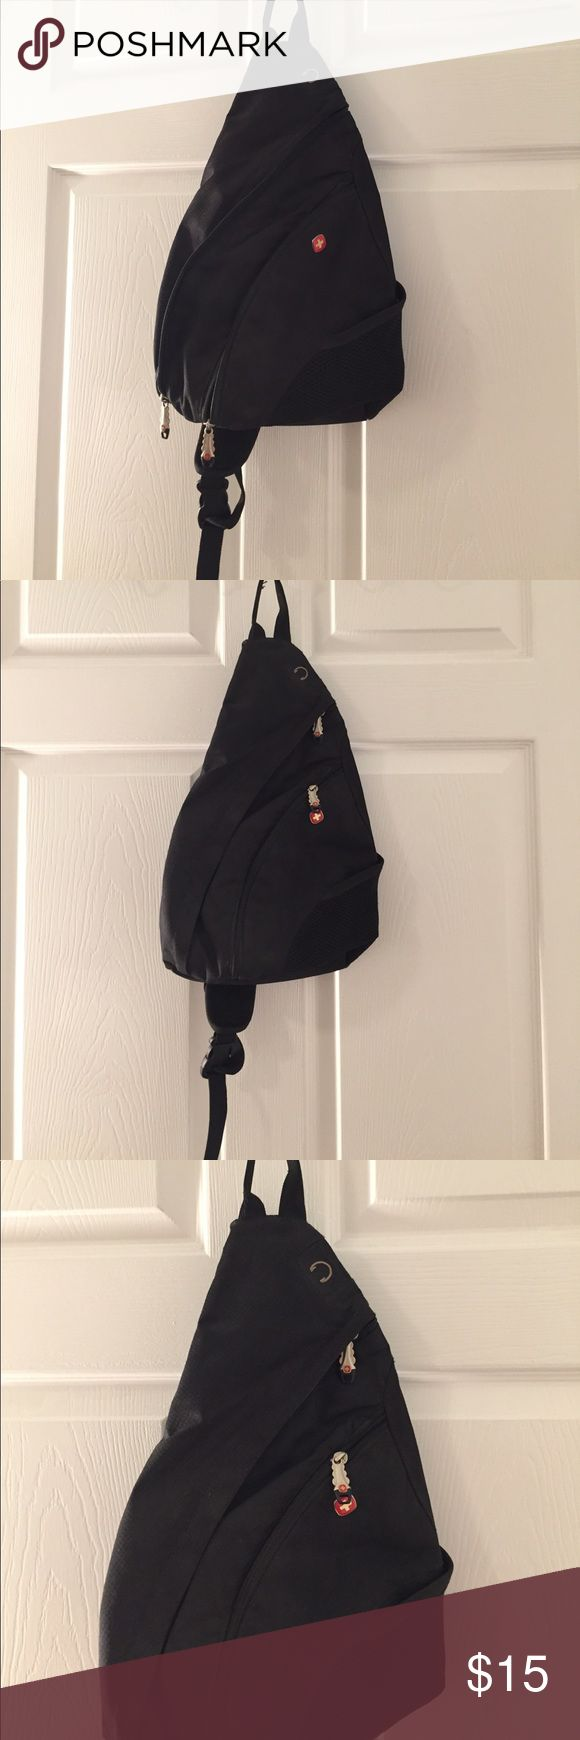 SwissGear by Wenger one strap back pack Swiss Gear by Wenger one strap backpack in black. Barely used and like new! Great for biking, hiking, or any on the go activity. Has several zippered compartments and adjustable strap. Lightweight and unisex. ✨Bundles of 3+ items get 15% off! SwissGear Bags Backpacks